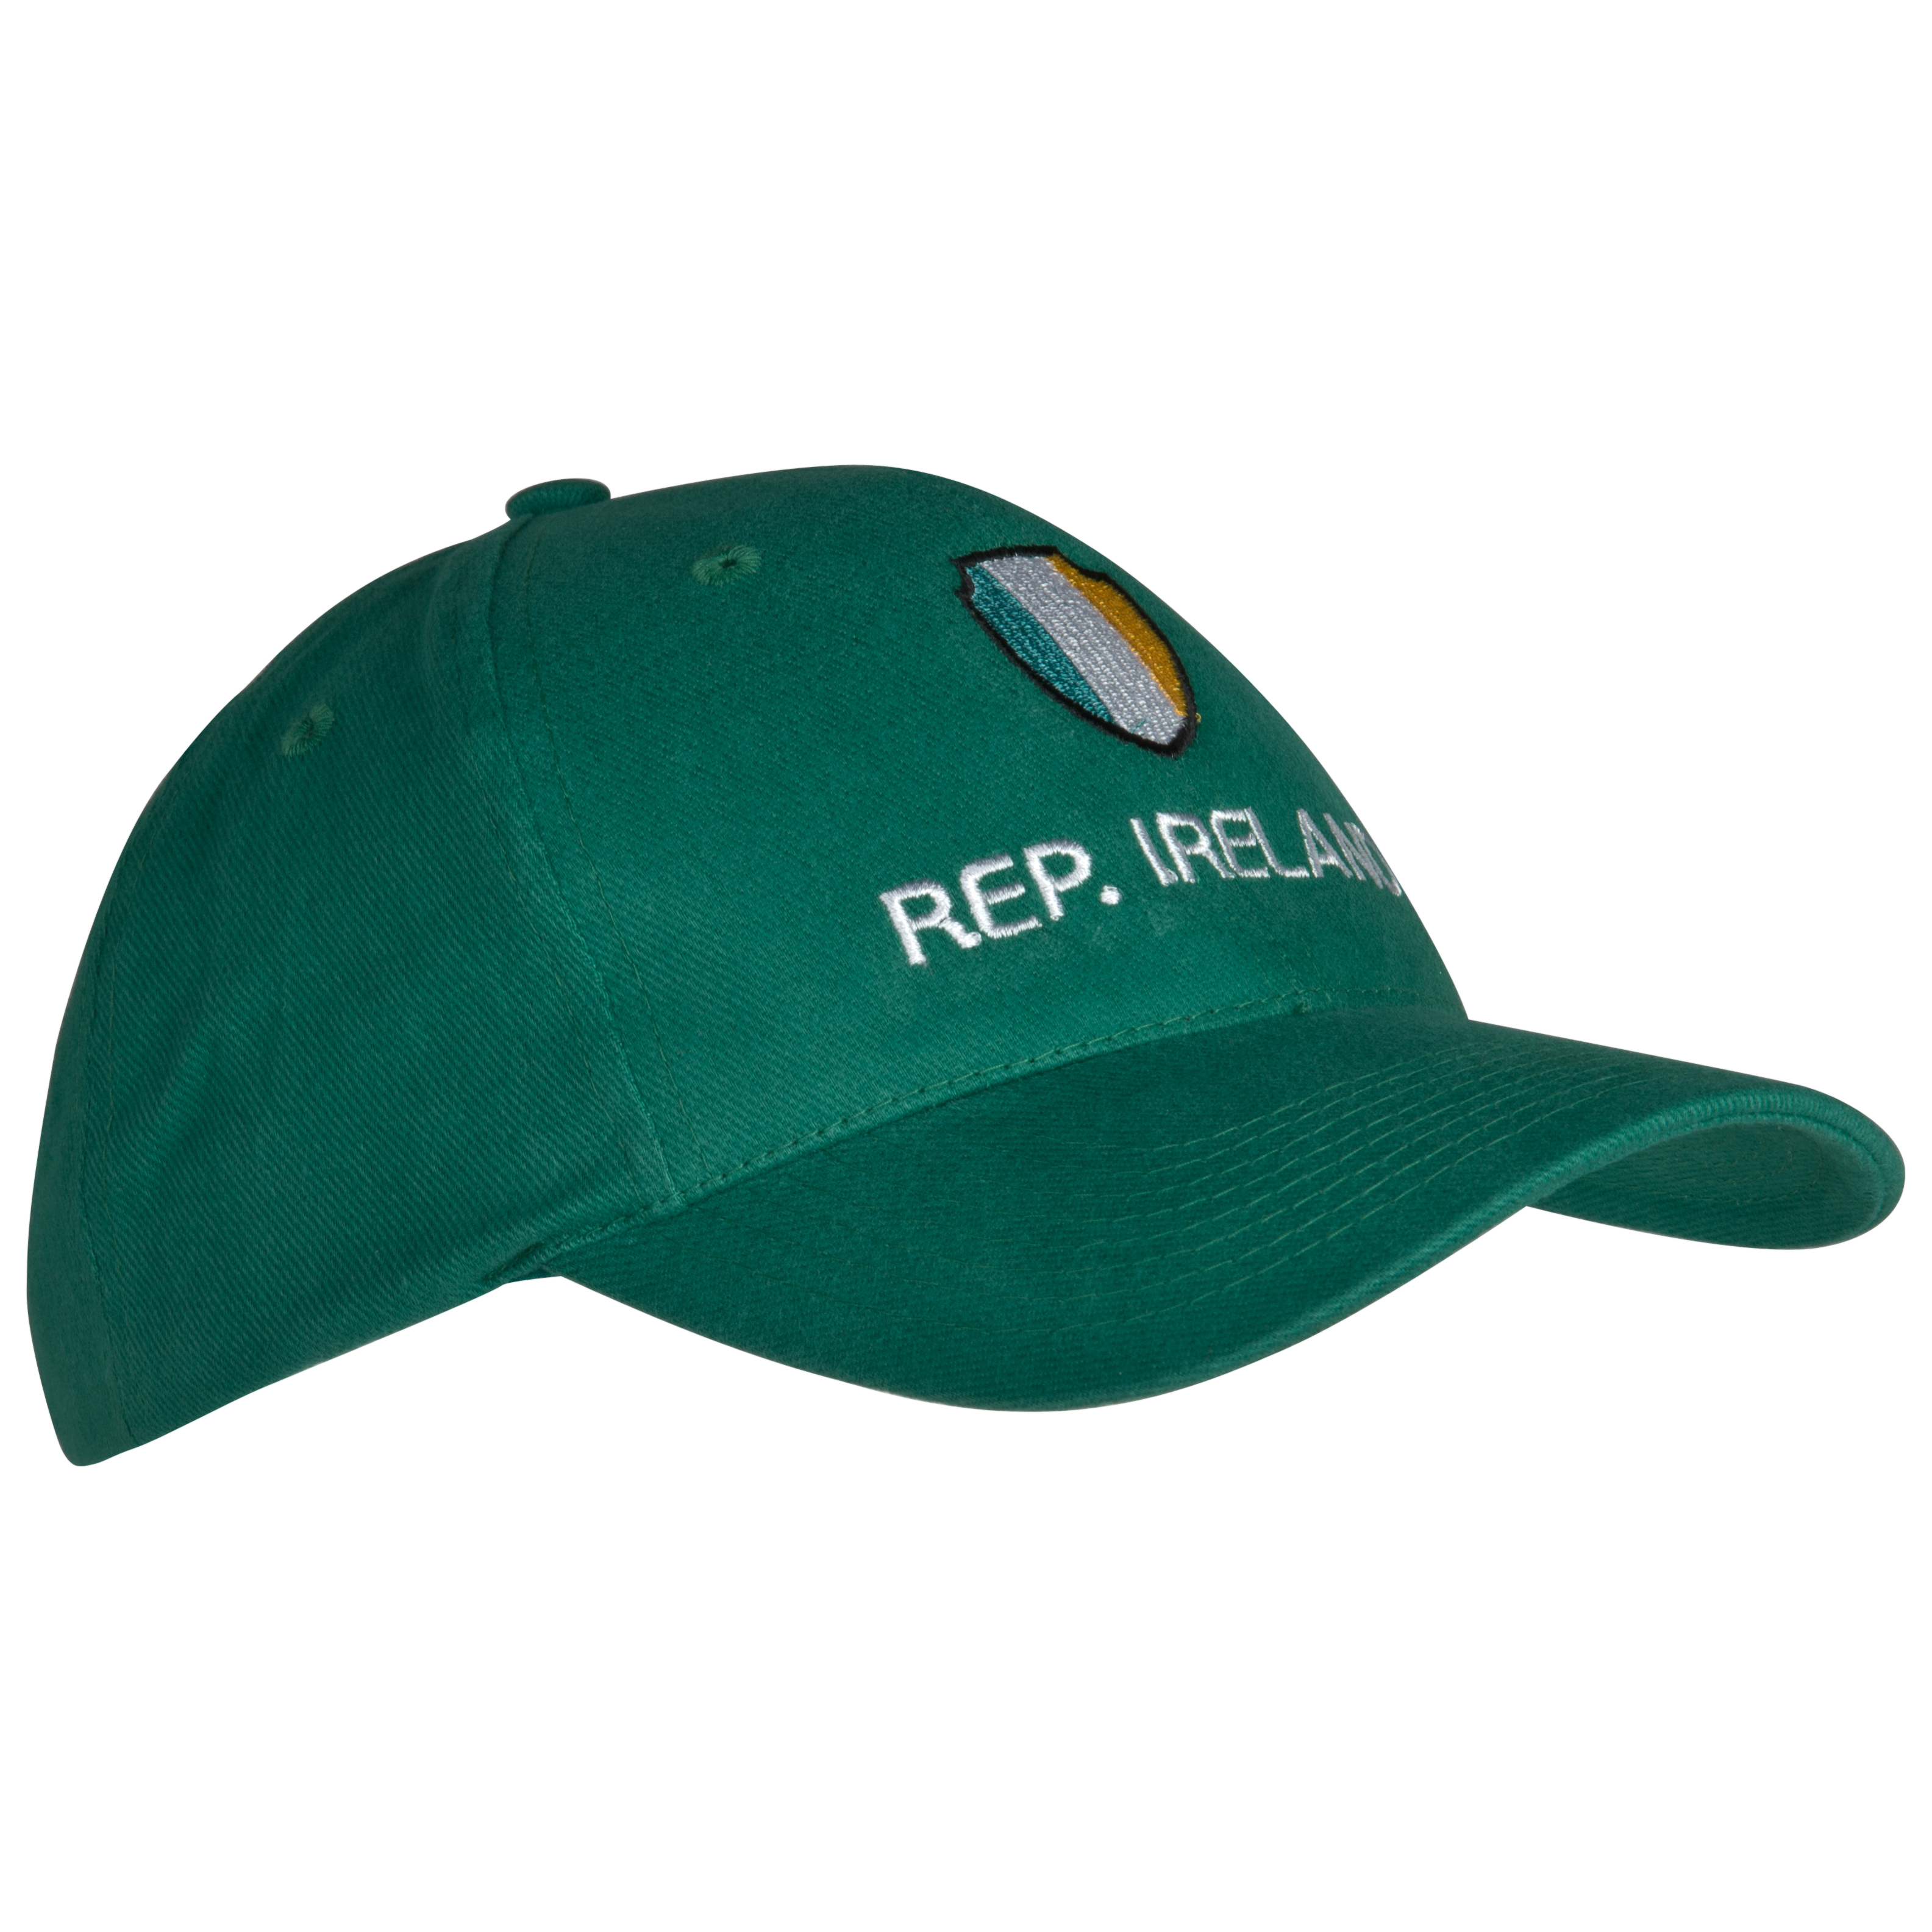 Euro 2012 Republic of Ireland Cap - Green/White